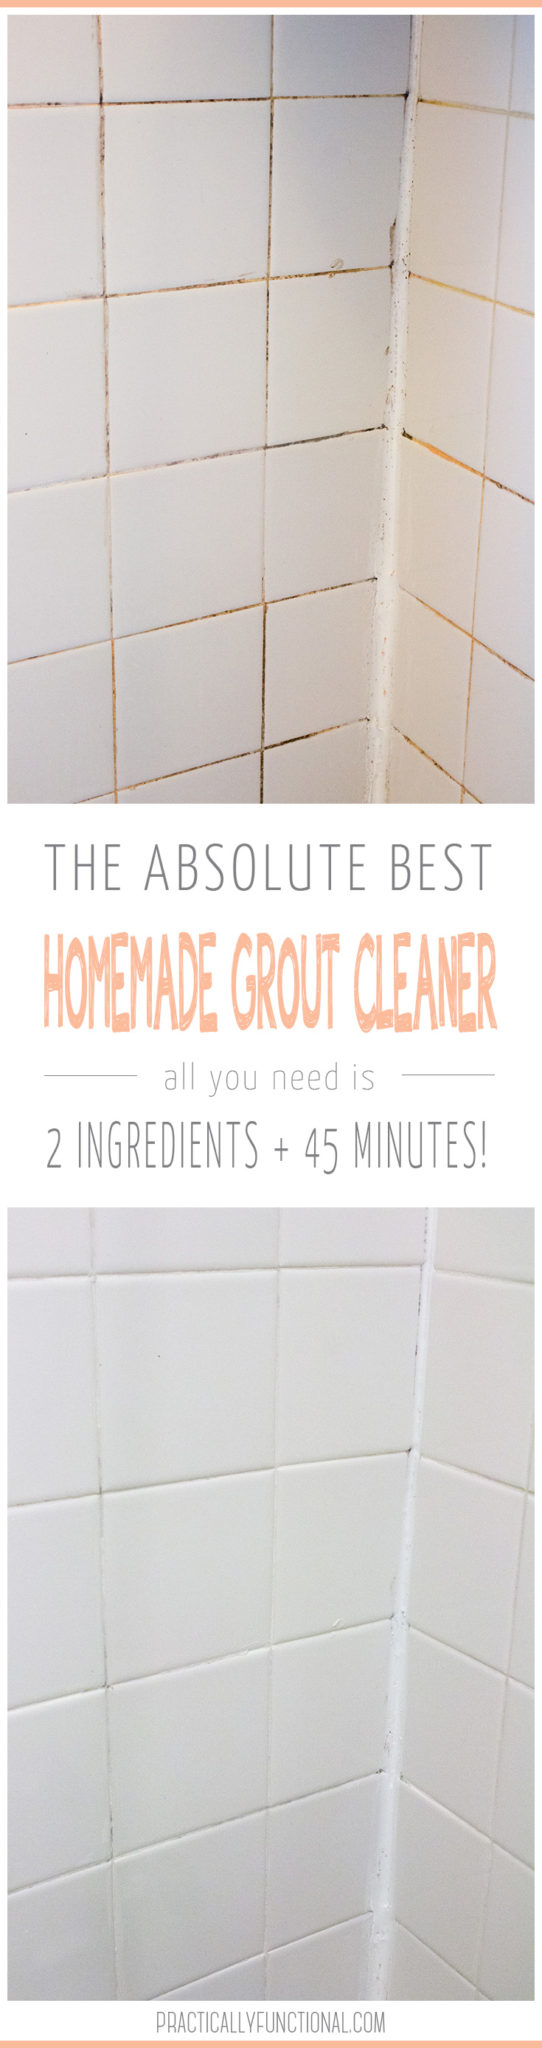 How To Clean Grout With A Homemade Grout Cleaner With Images Grout Cleaner Homemade Grout Cleaner Clean Tile Grout